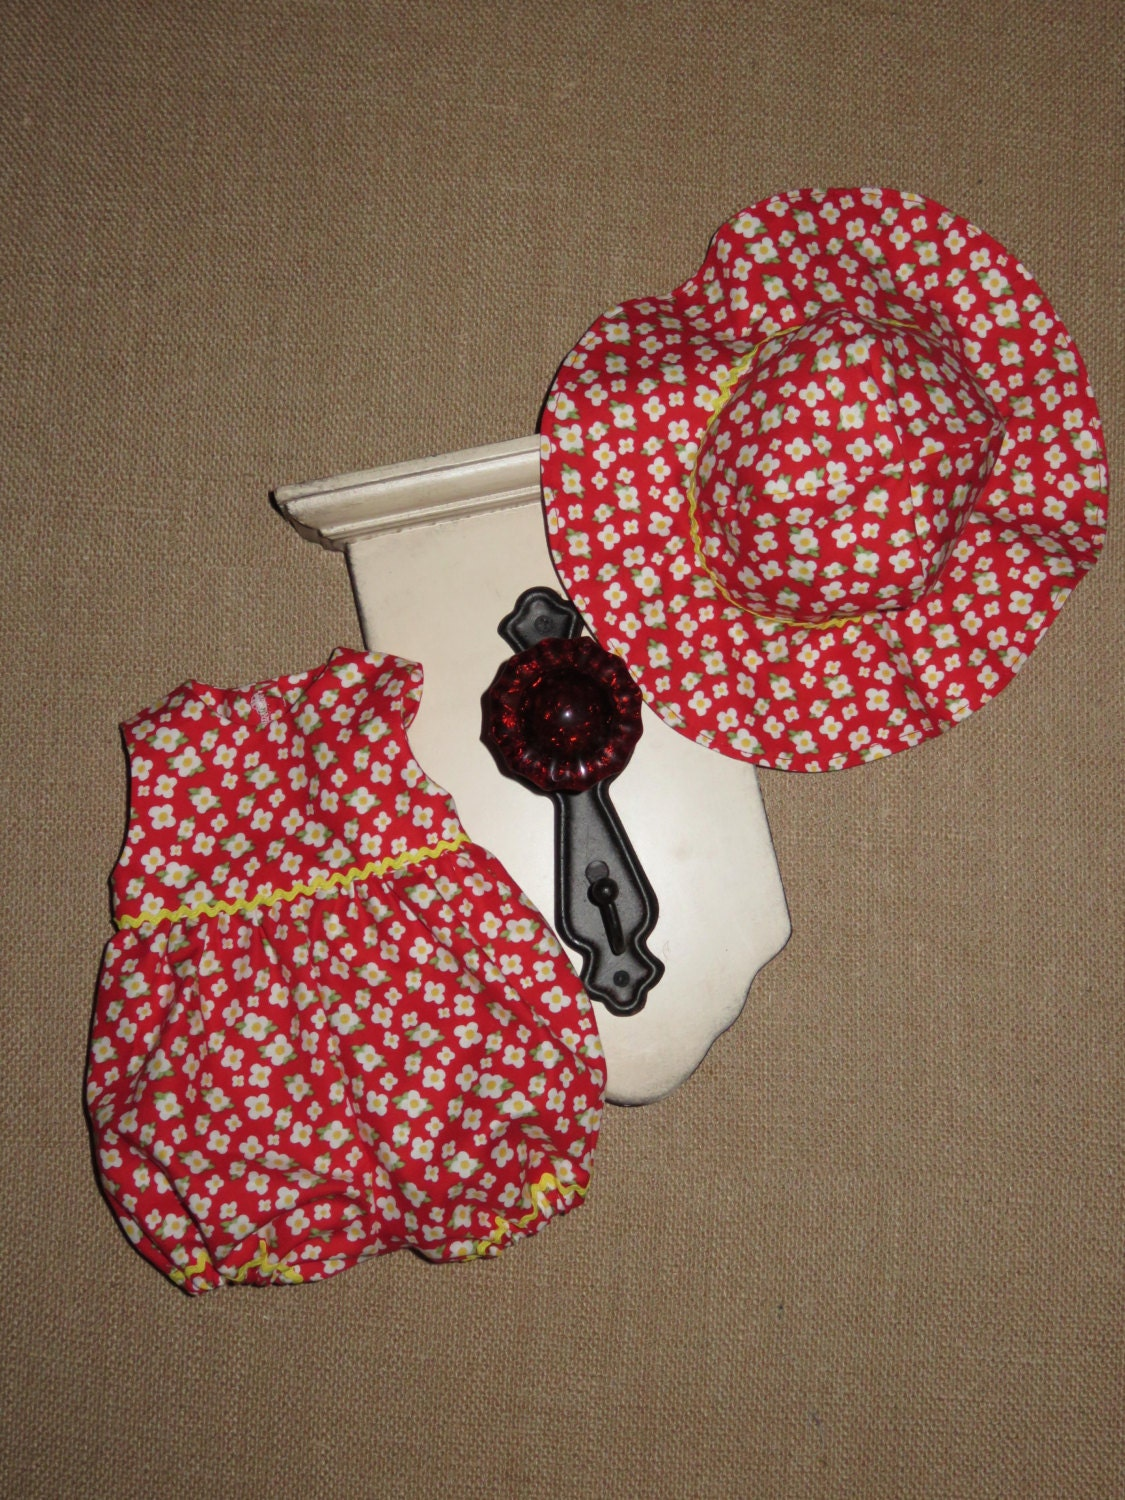 Handmade 16 18 Inch Baby Doll Clothes Red Yellow & White